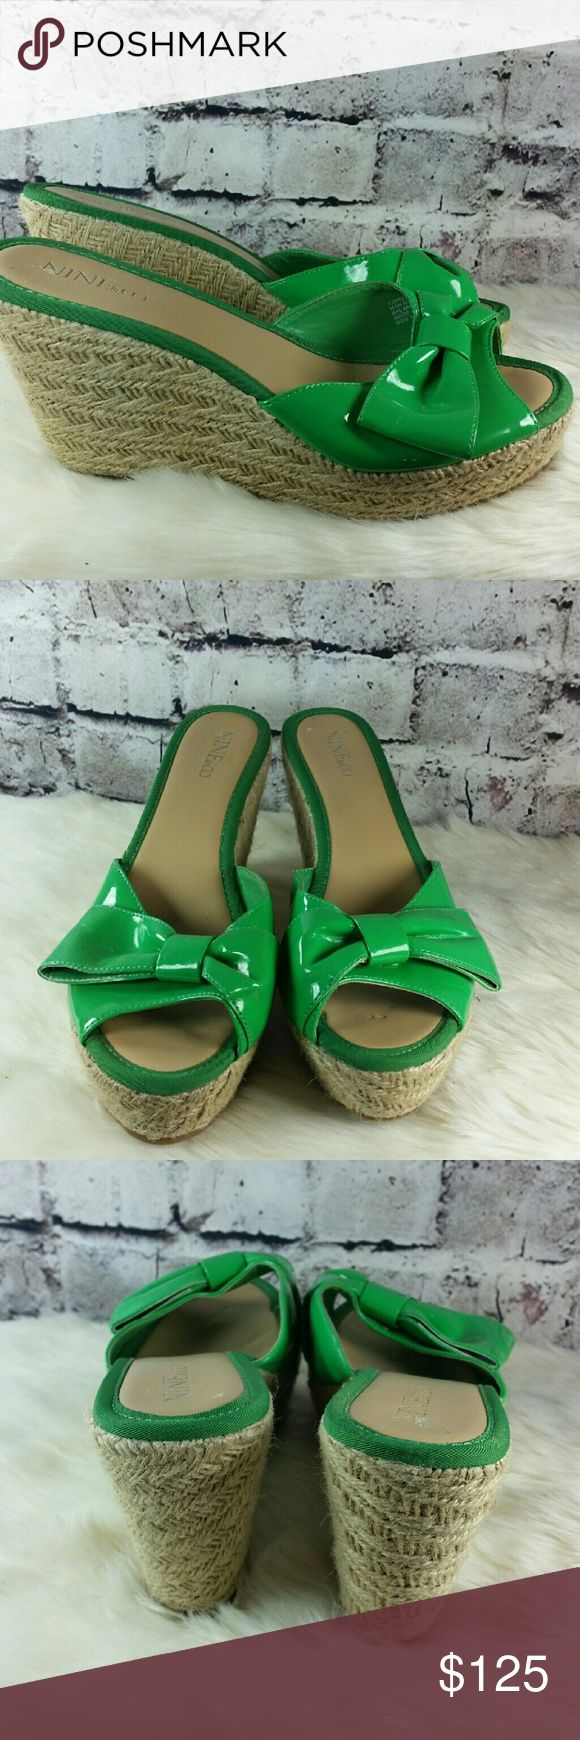 Green patent leather espadrille wedge sandals. Green patent leather espadrille wedge sandals. Style is Enchanter. Heels are 3.75 inches Shoes Wedges